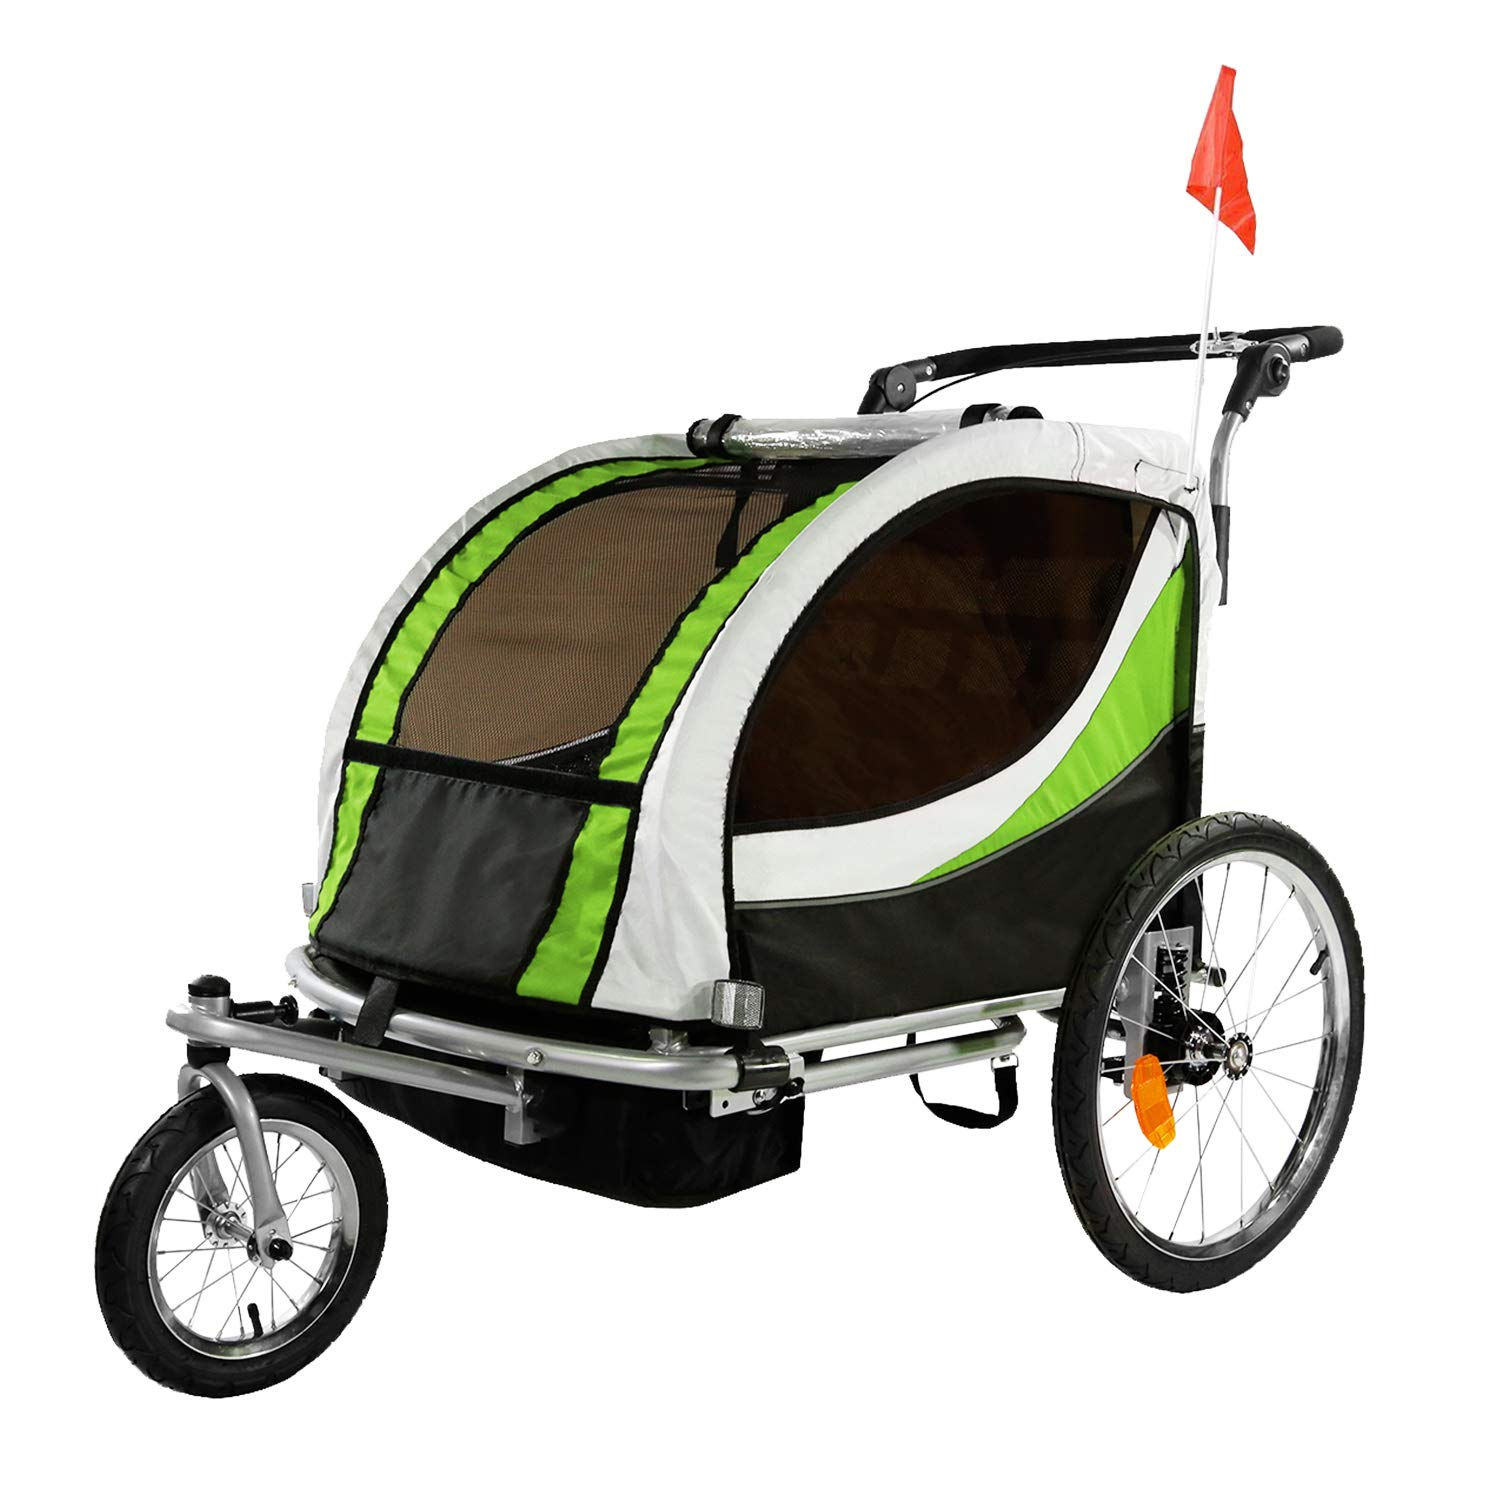 Clevr 3-in-1 Double 2 Seat Bicycle Bike Trailer Jogger Stroller for Kids Children | Foldable Collapsible w/Pivot Front Wheel, Green by Clevr